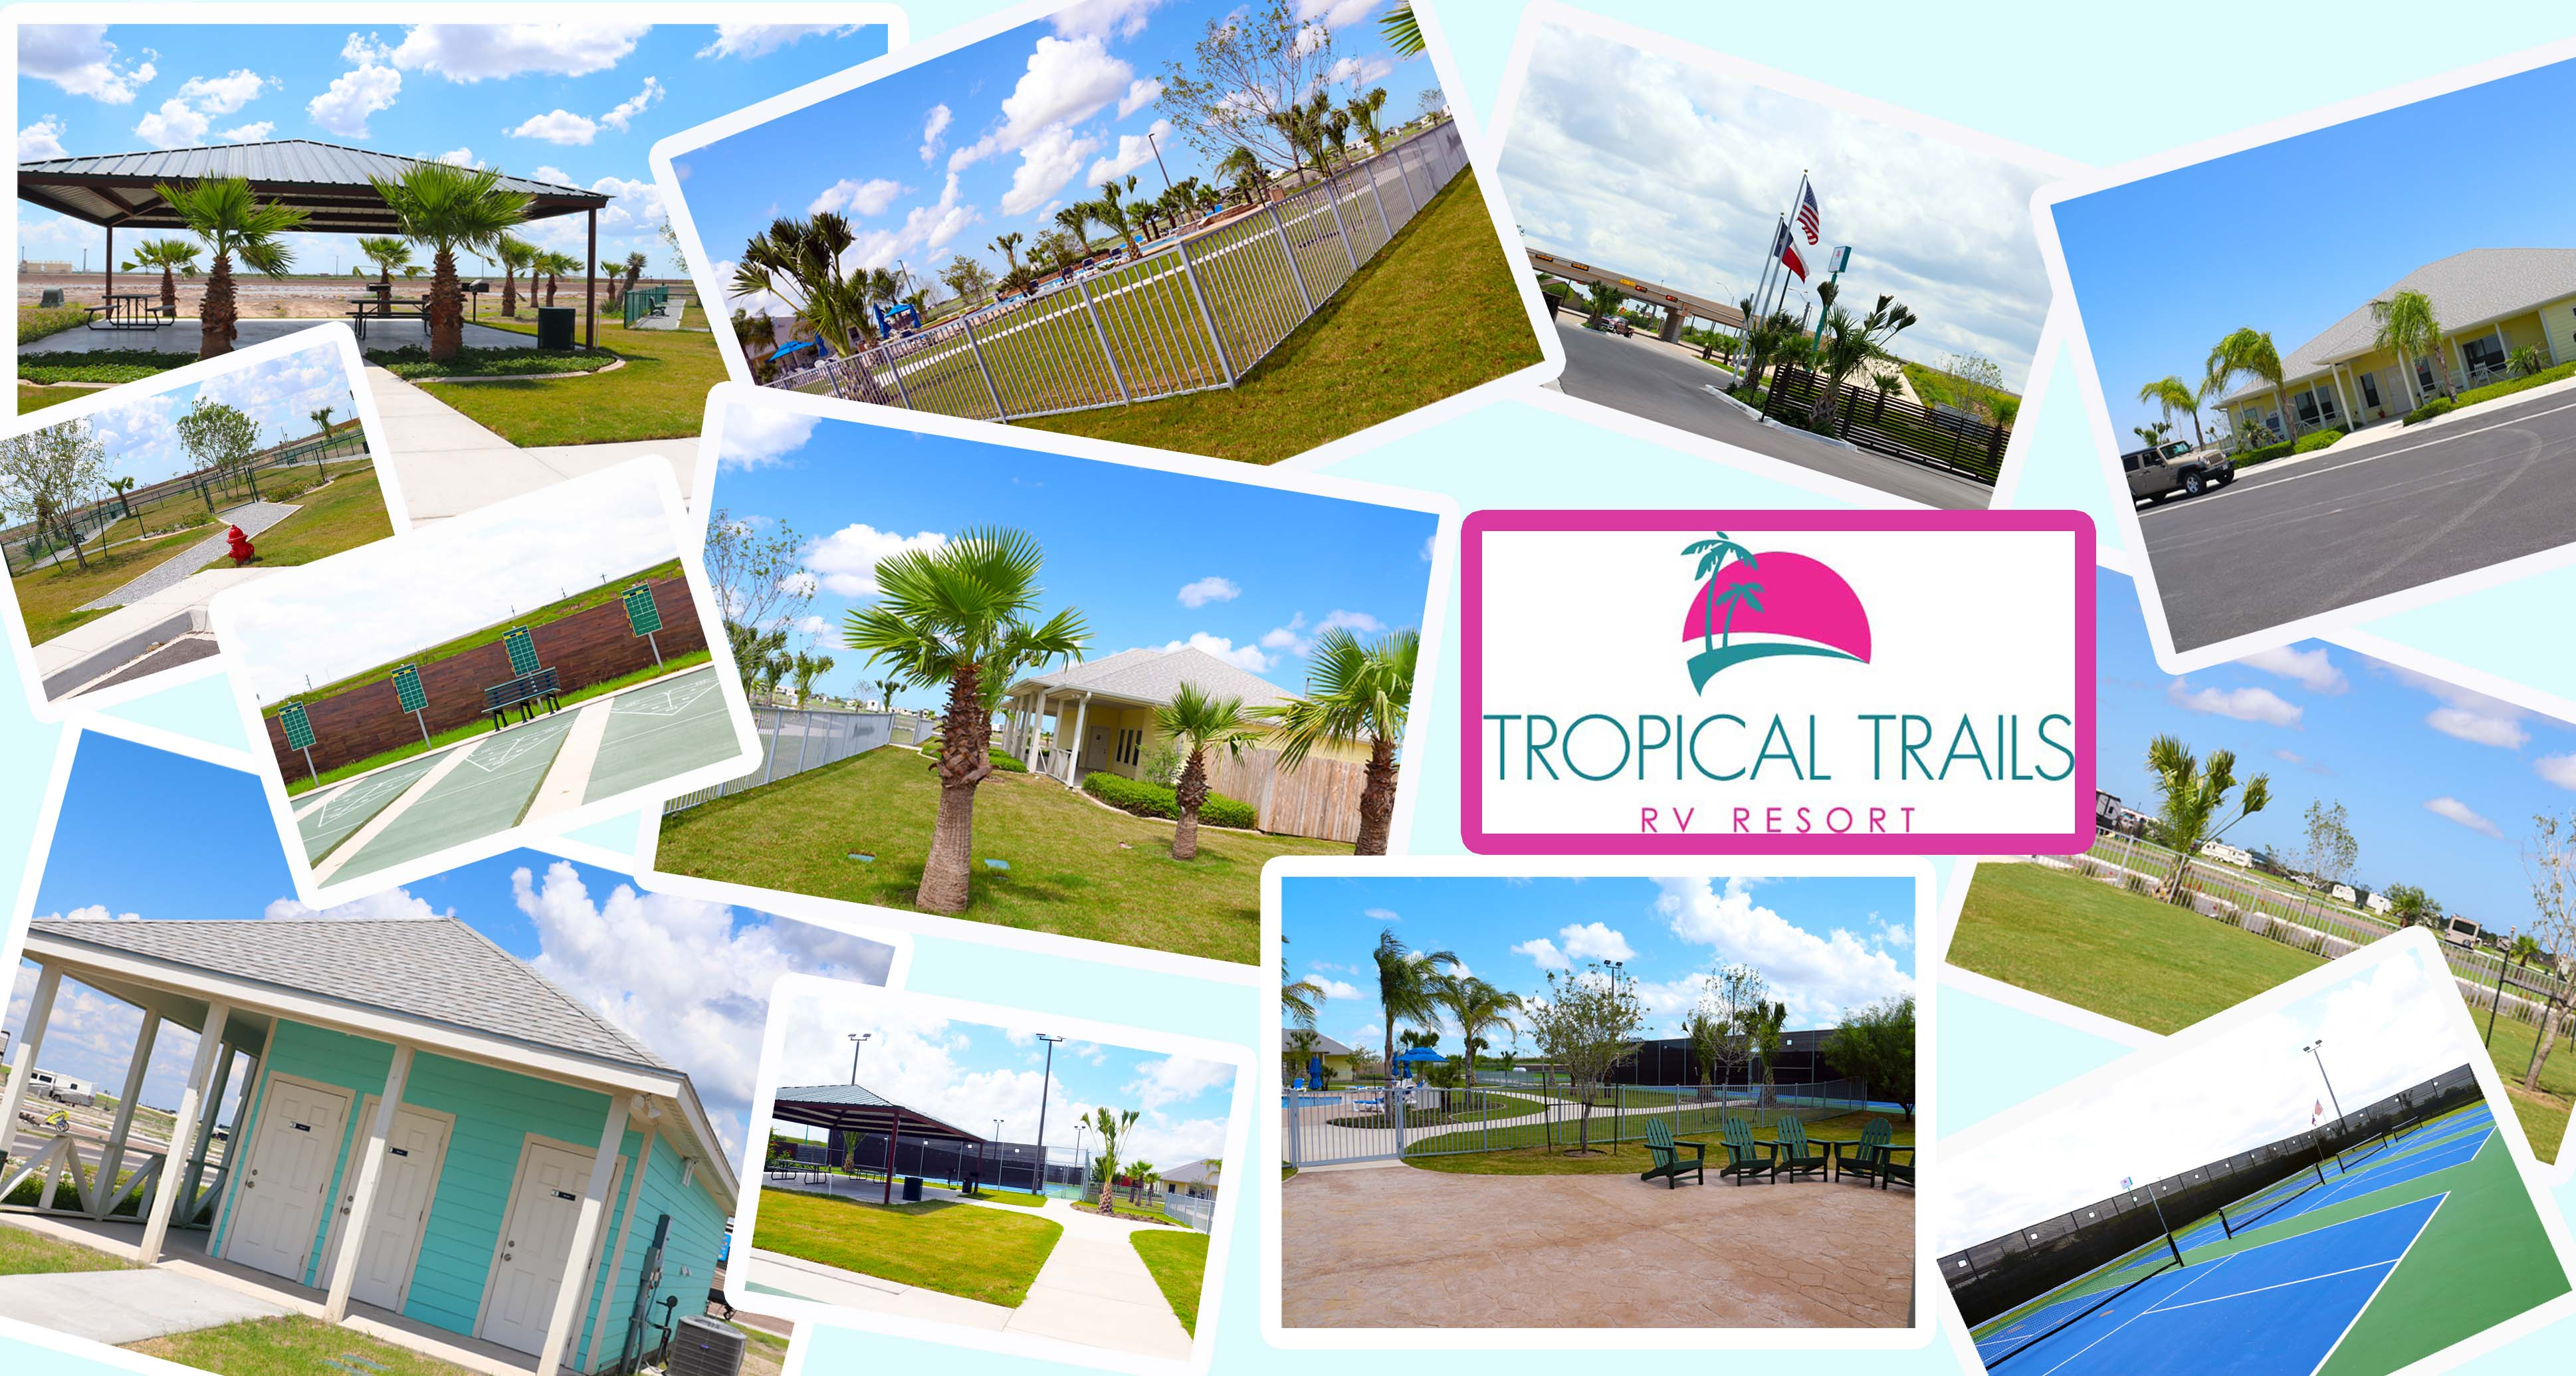 Tropical Trails RV Resort